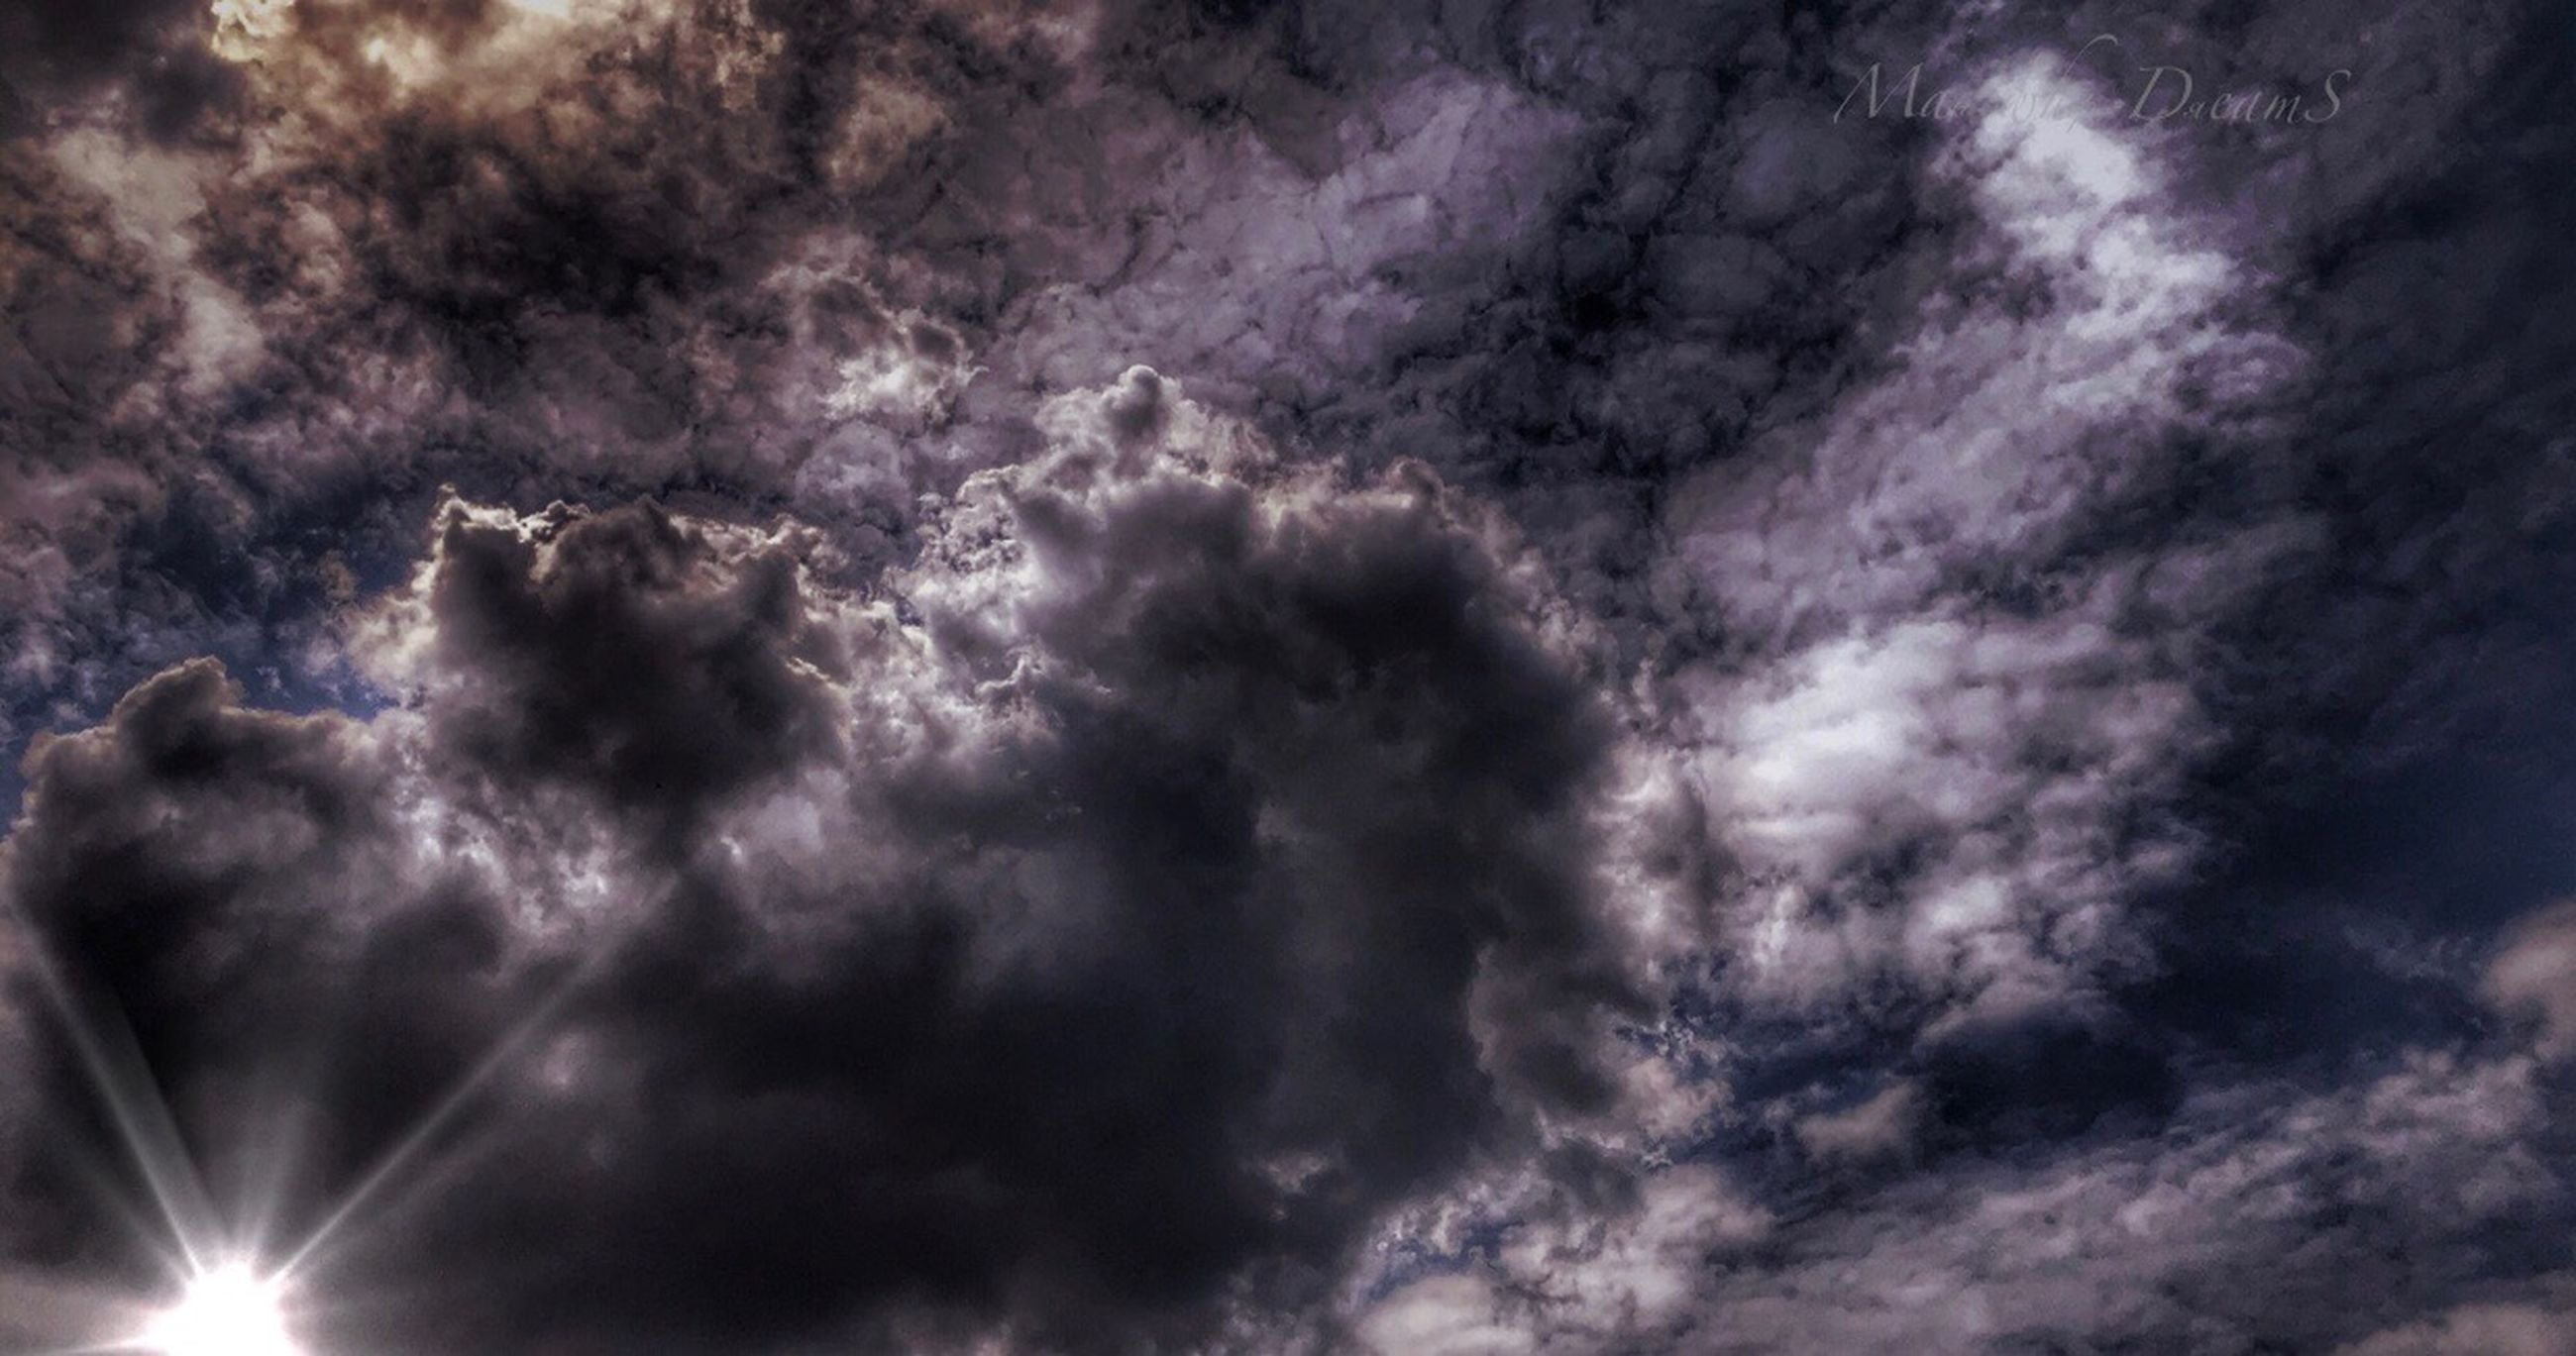 sky, cloud - sky, low angle view, beauty in nature, scenics - nature, no people, nature, storm, storm cloud, overcast, outdoors, dramatic sky, tranquility, cloudscape, thunderstorm, backgrounds, full frame, idyllic, purple, power in nature, meteorology, ominous